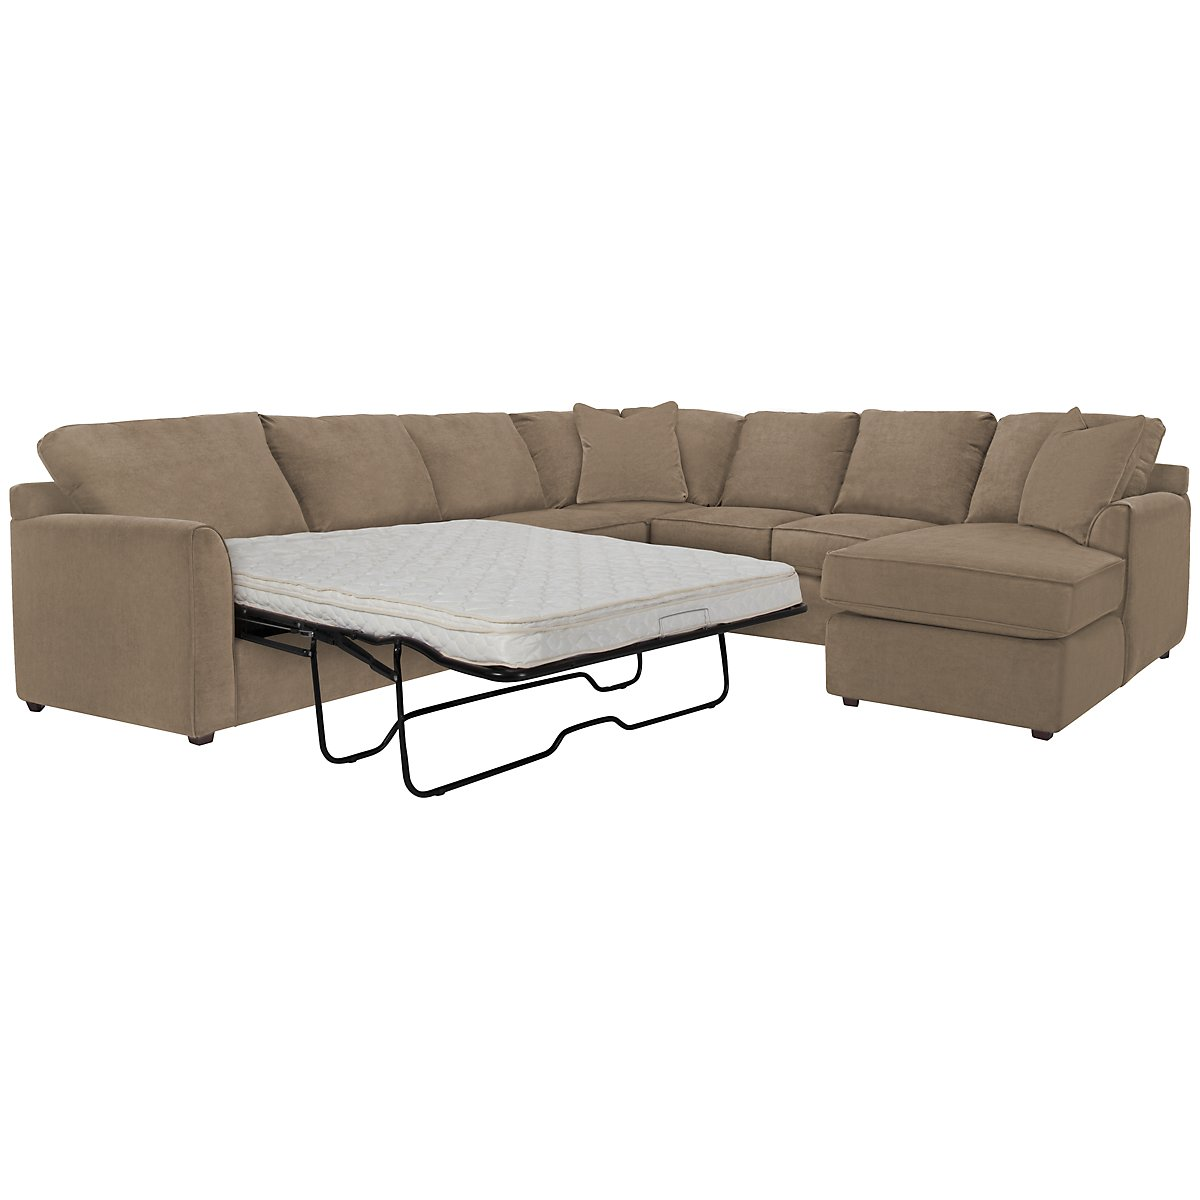 Express3 Light Brown Microfiber Right Chaise Innerspring Sleeper Sectional